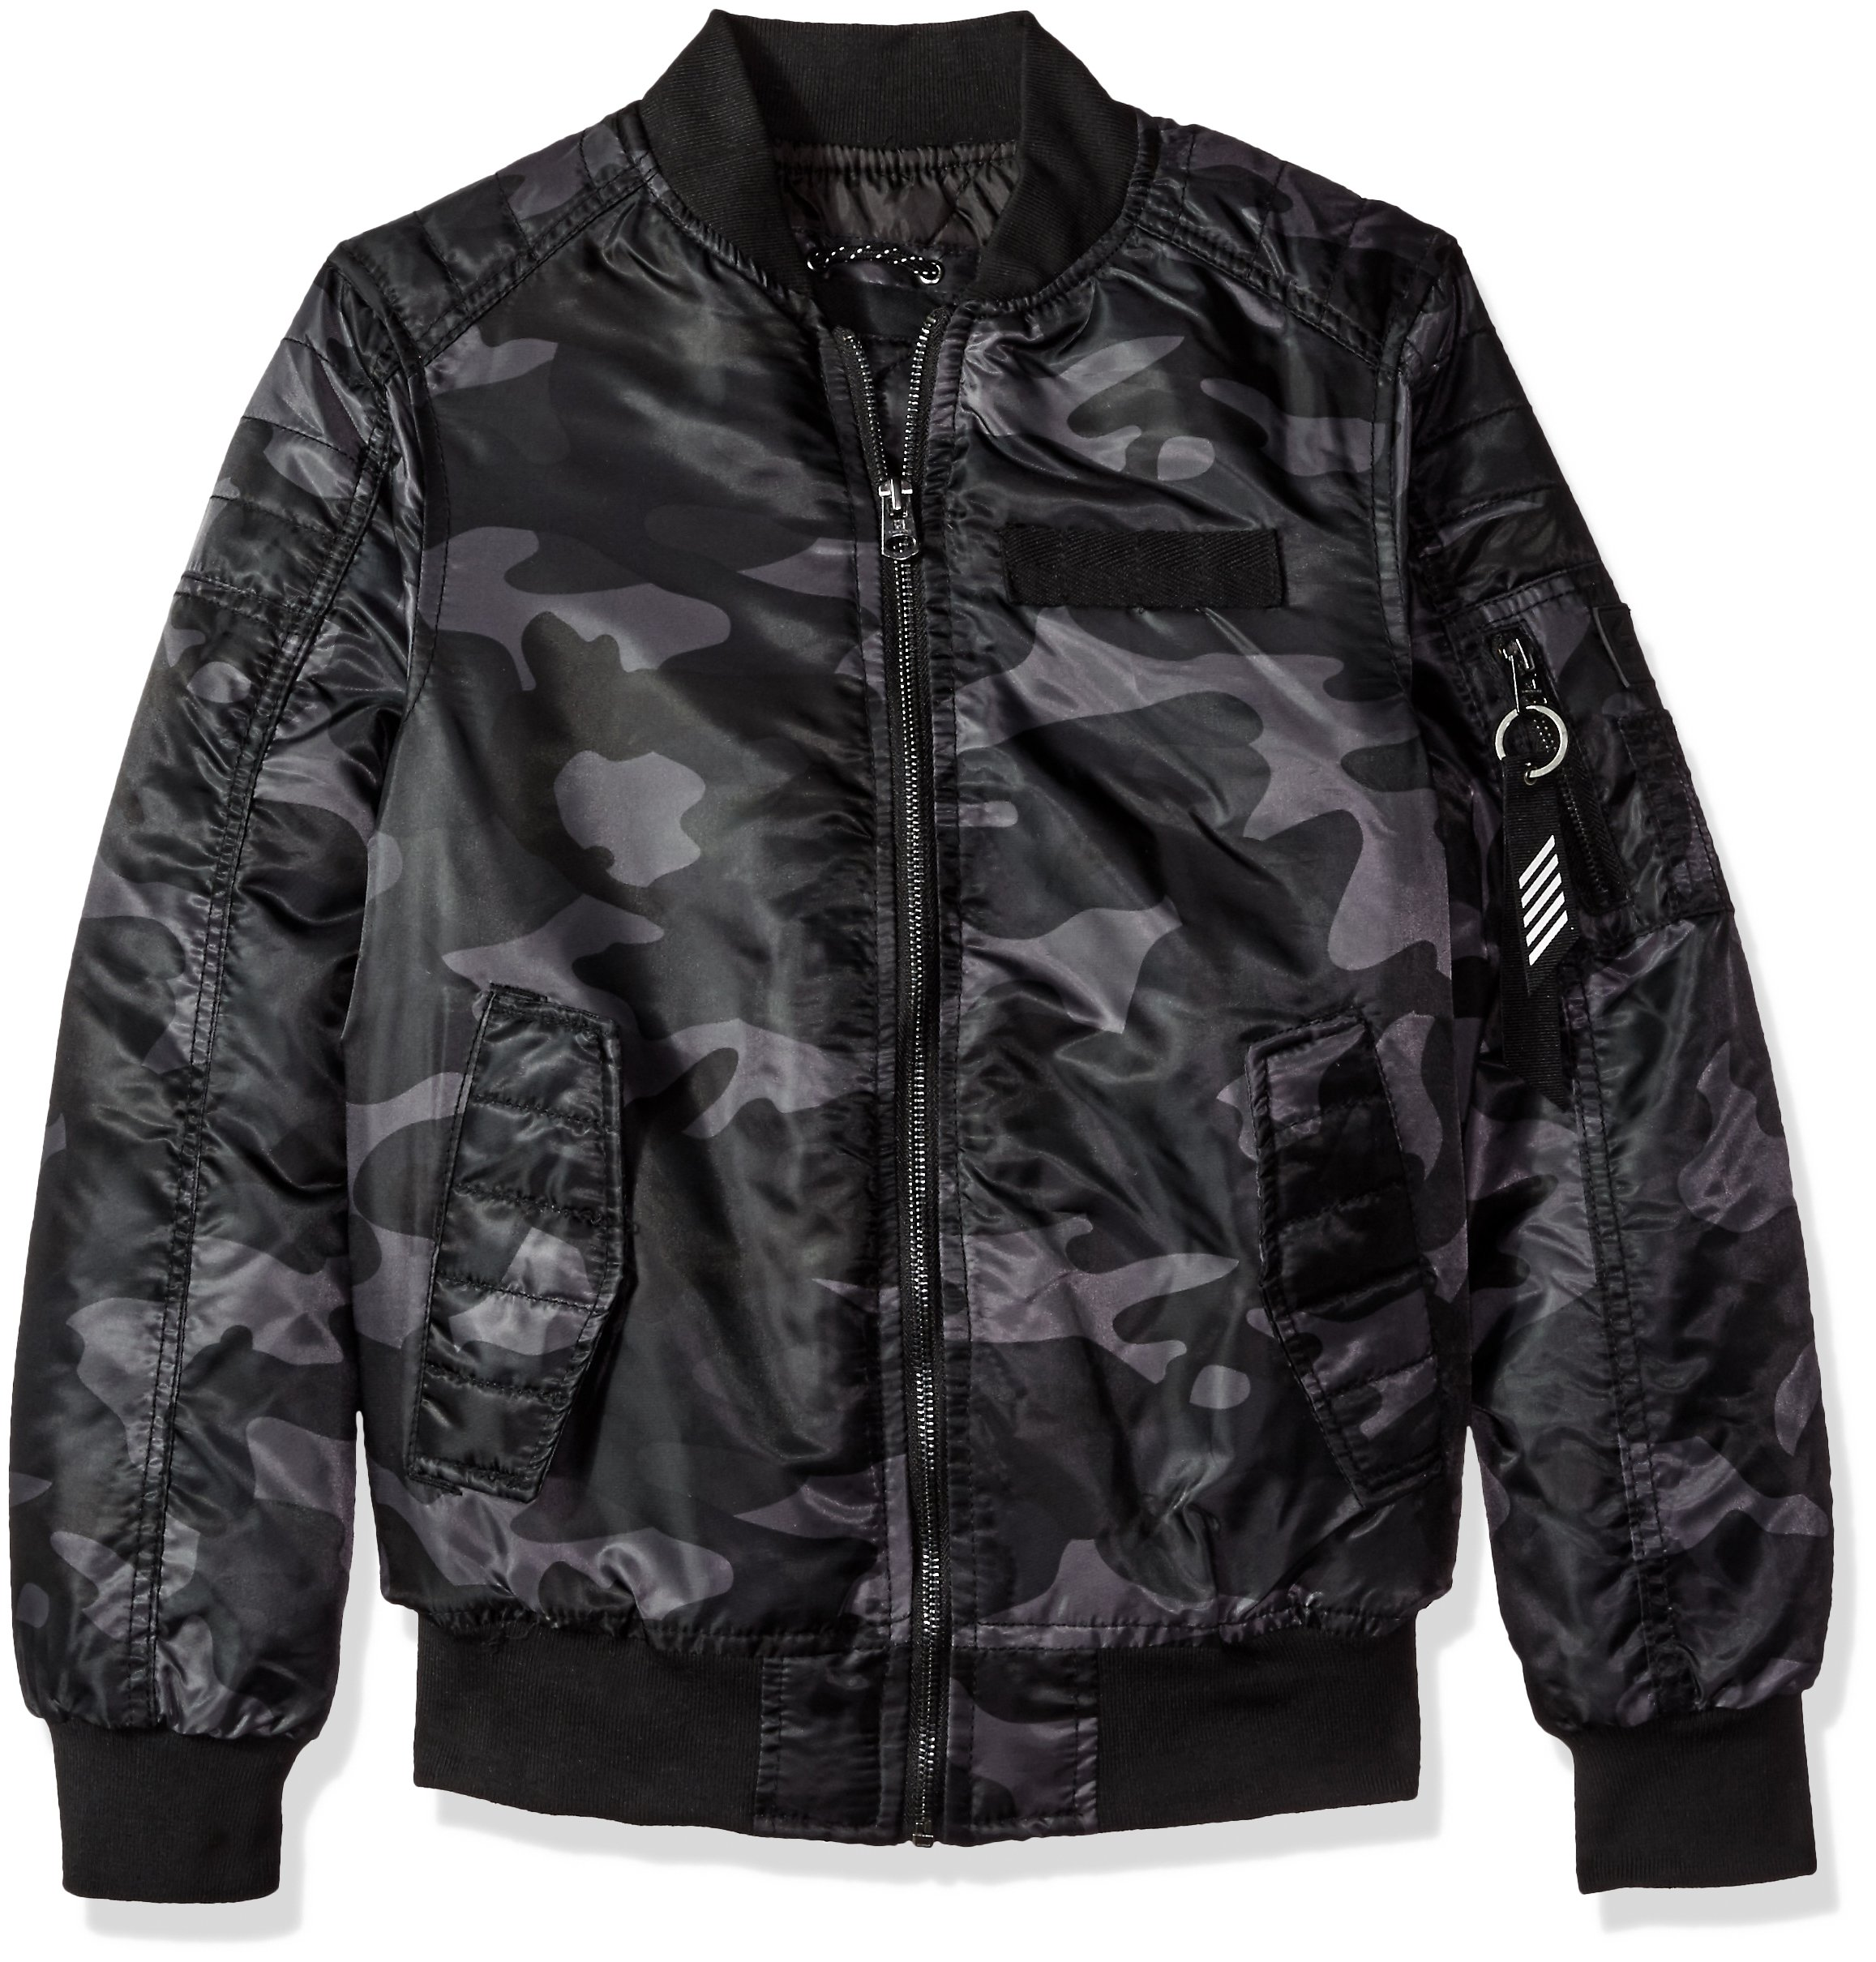 Southpole Big Boys' MA-1 Camo Bomber Flight Jacket With Biker Detail, Greyblack, Medium